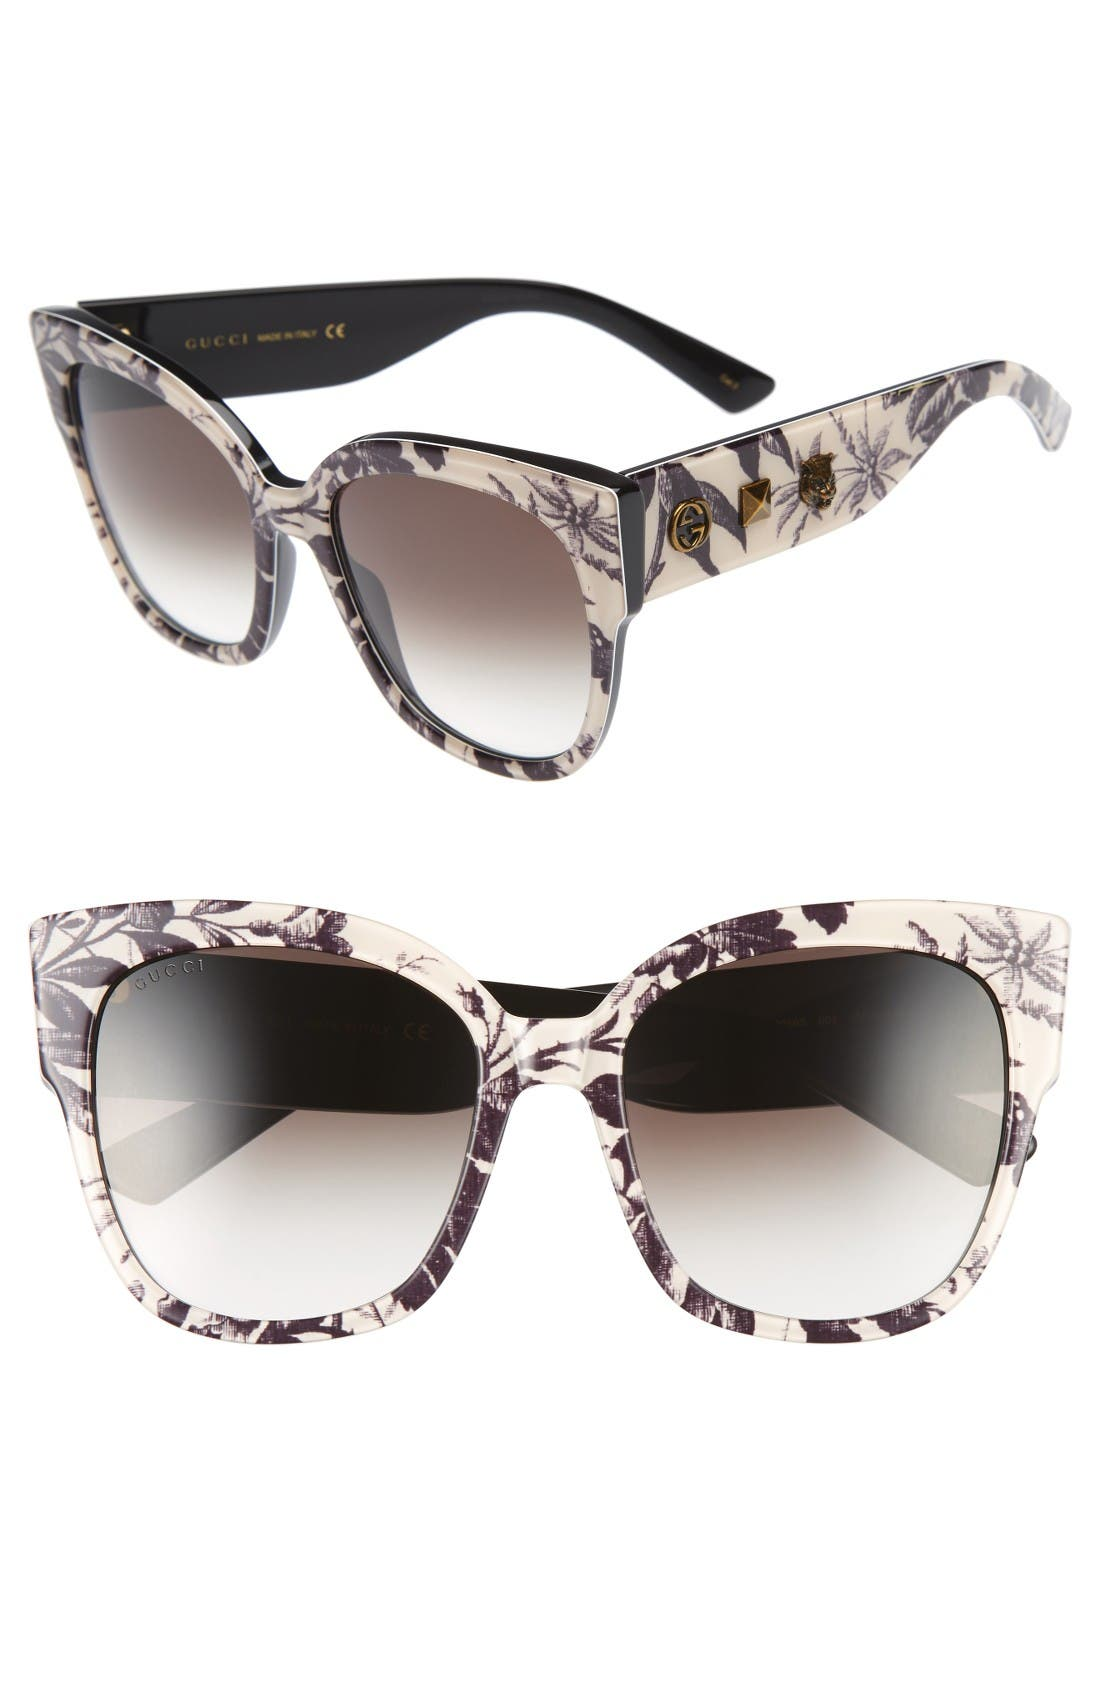 Main Image - Gucci 55mm Butterfly Sunglasses